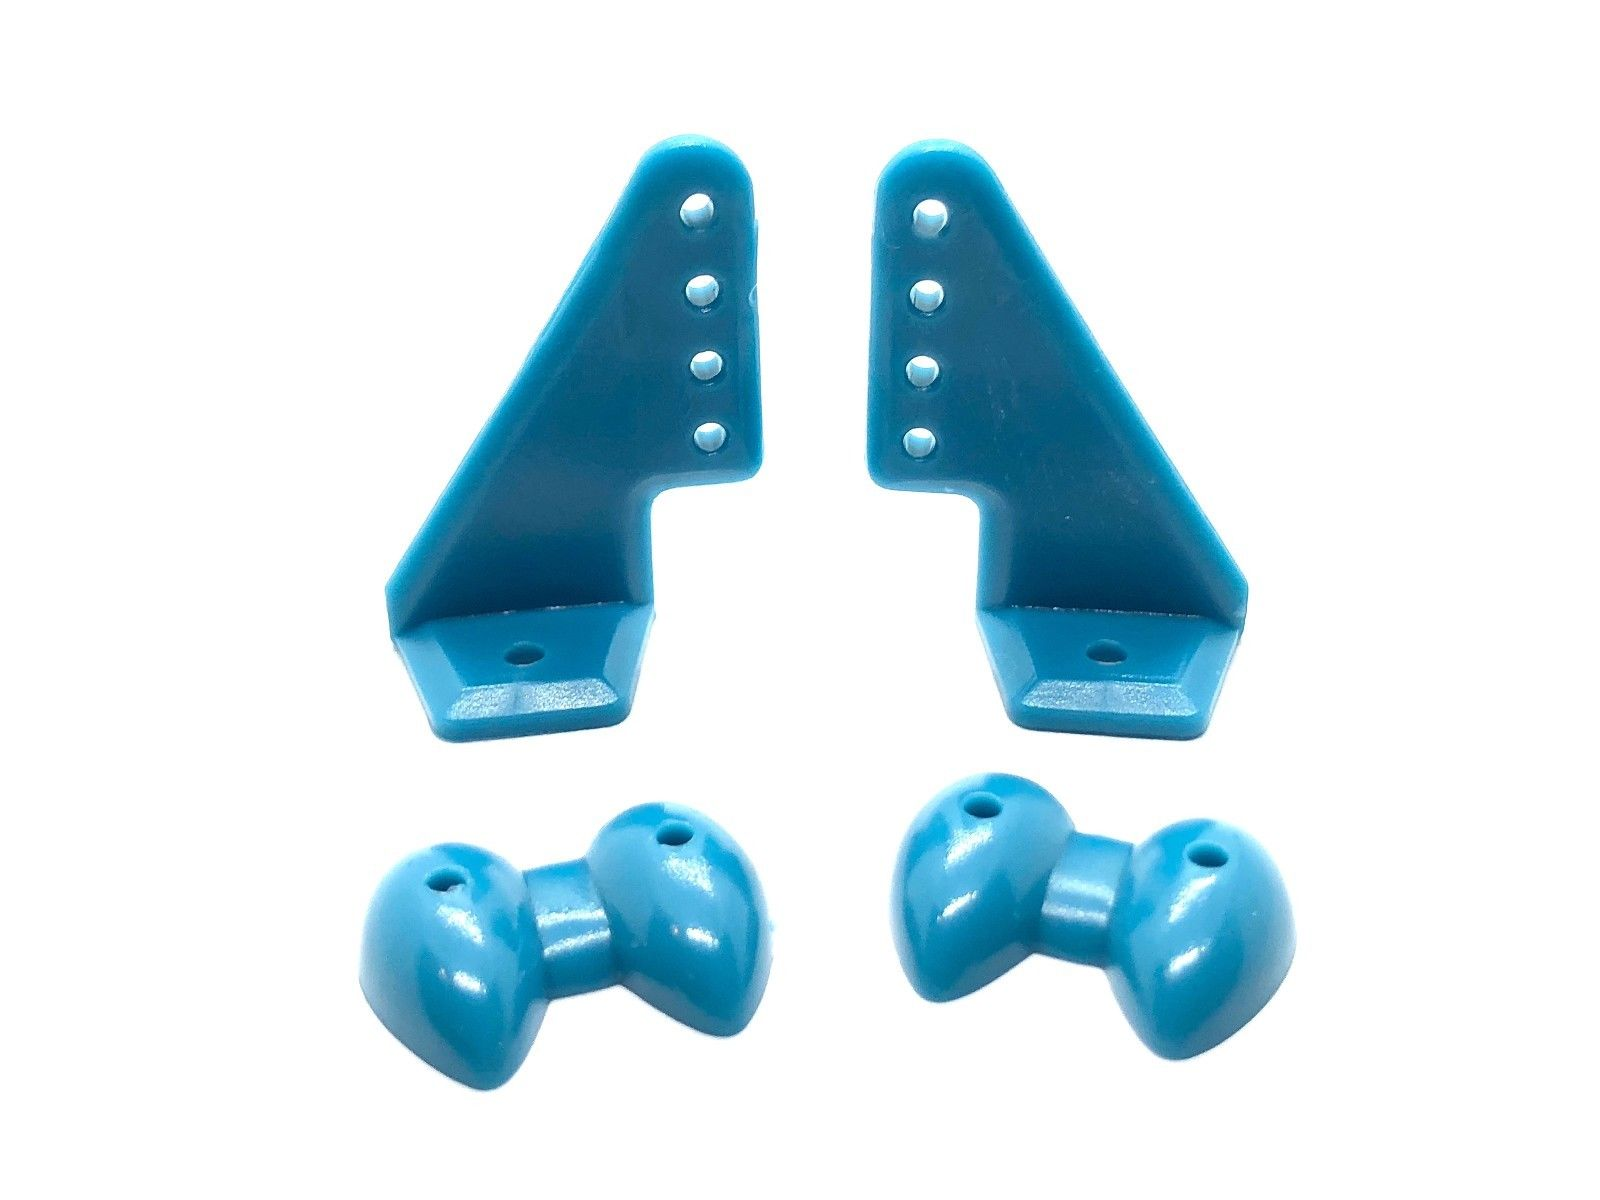 POM Control Horn 04 Holes - 20x27mm (Pack of 5) Blue